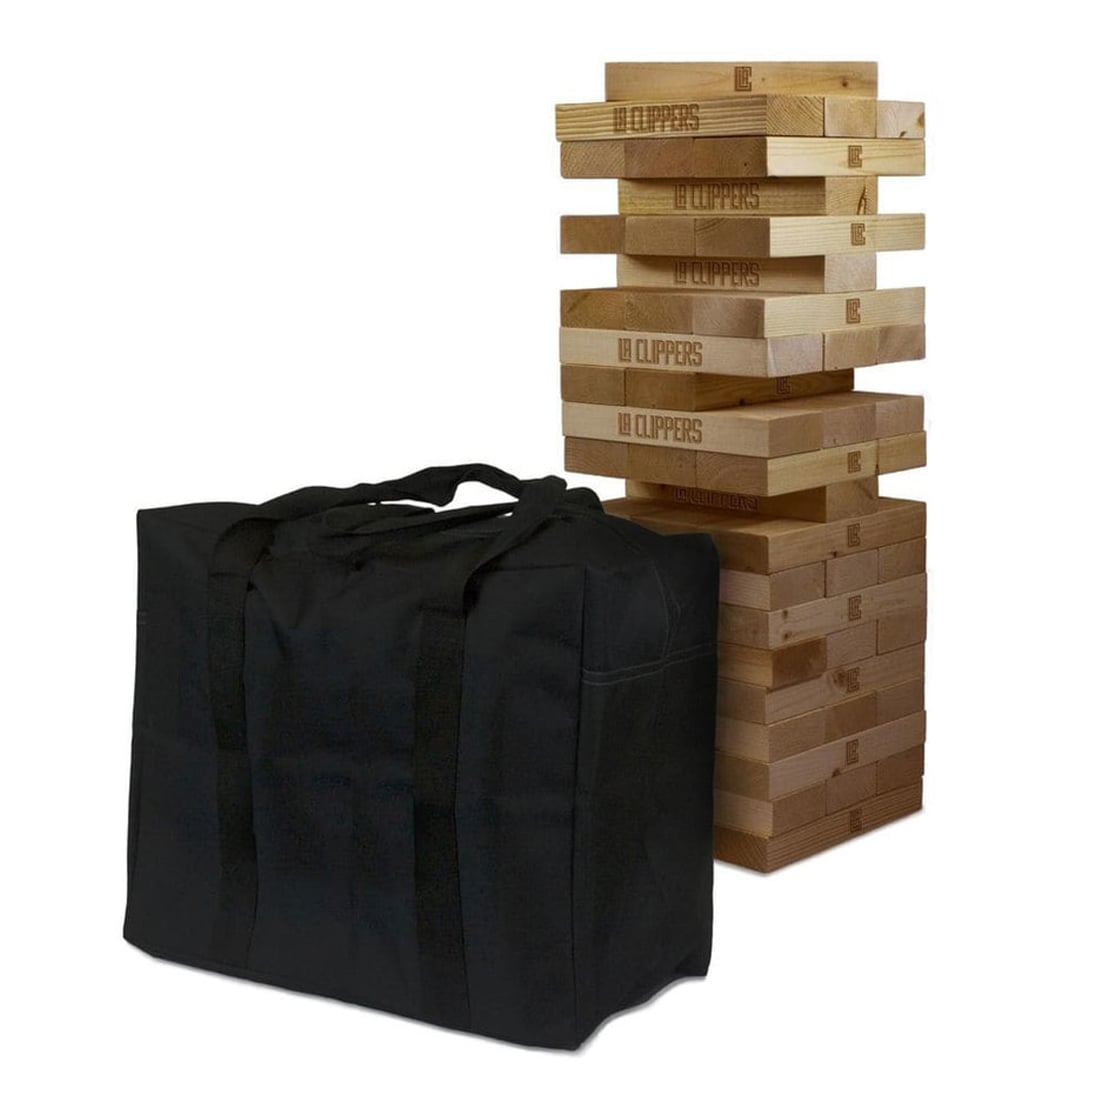 LA Clippers Giant Wooden Tumble Tower Game